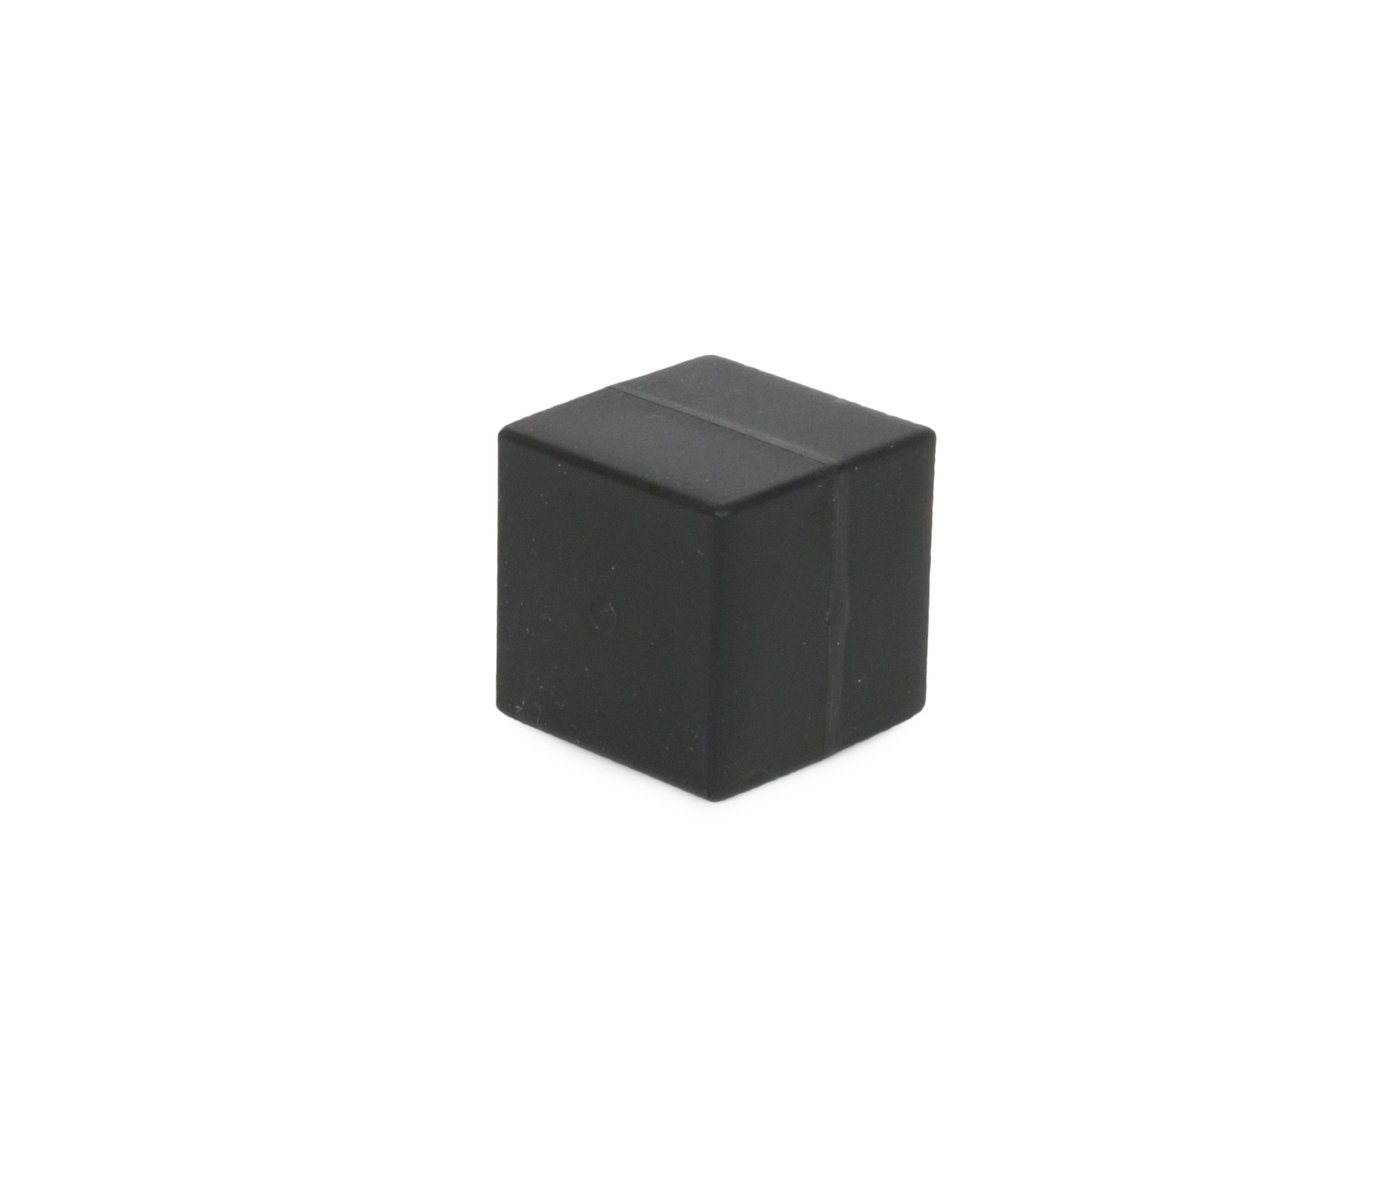 Unbreakable Plastic-Coated N52 Neodymium Cube Magnets, Waterproof, 1 x 1 x 1 inch. 2-Pack. Revitalizaire Strong Permanent NdFeB Rare Earth Magnets Coated with Hard Black Polypropylene by Revitalizaire (Image #2)